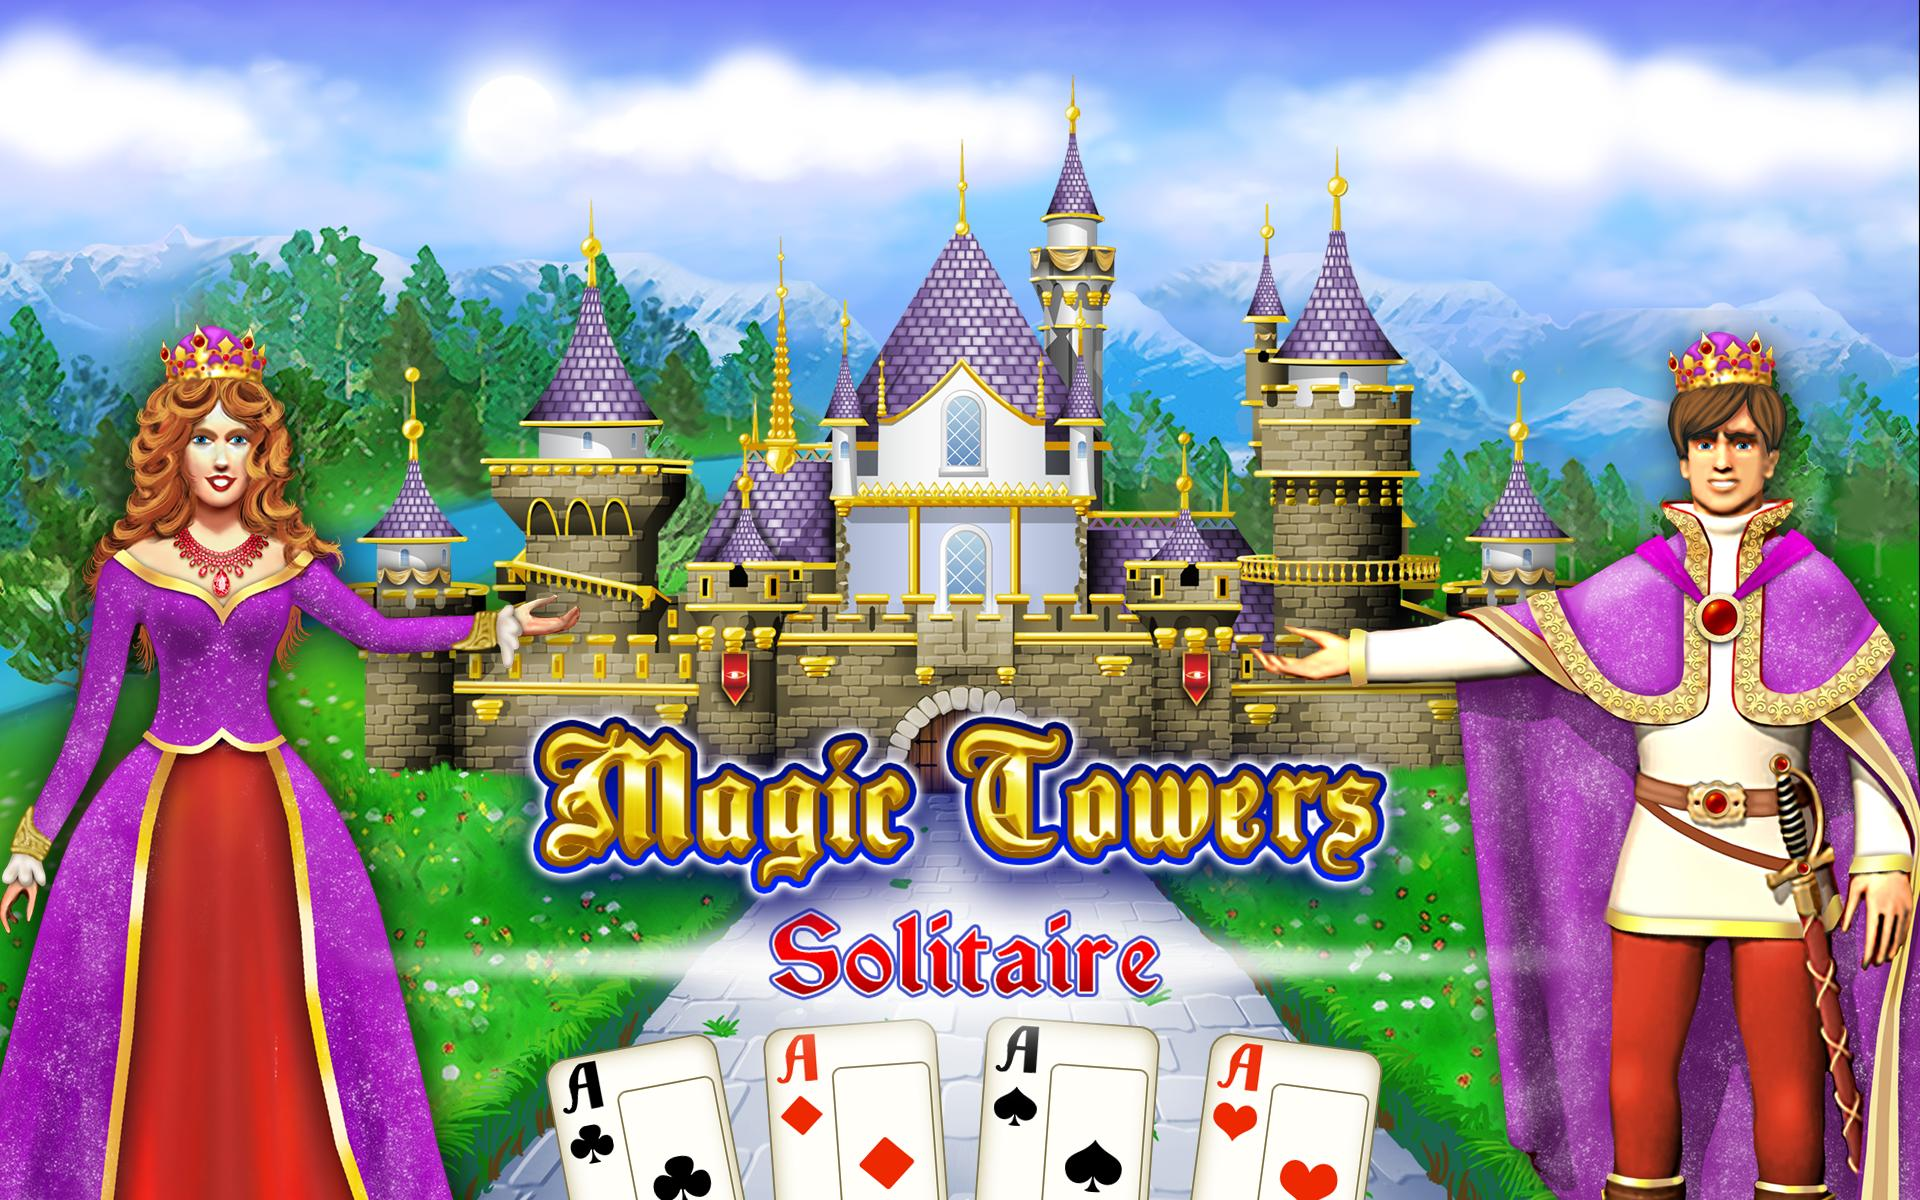 Magic Towers Solitaire Tri Peaks 1.53.21-g Screenshot 15